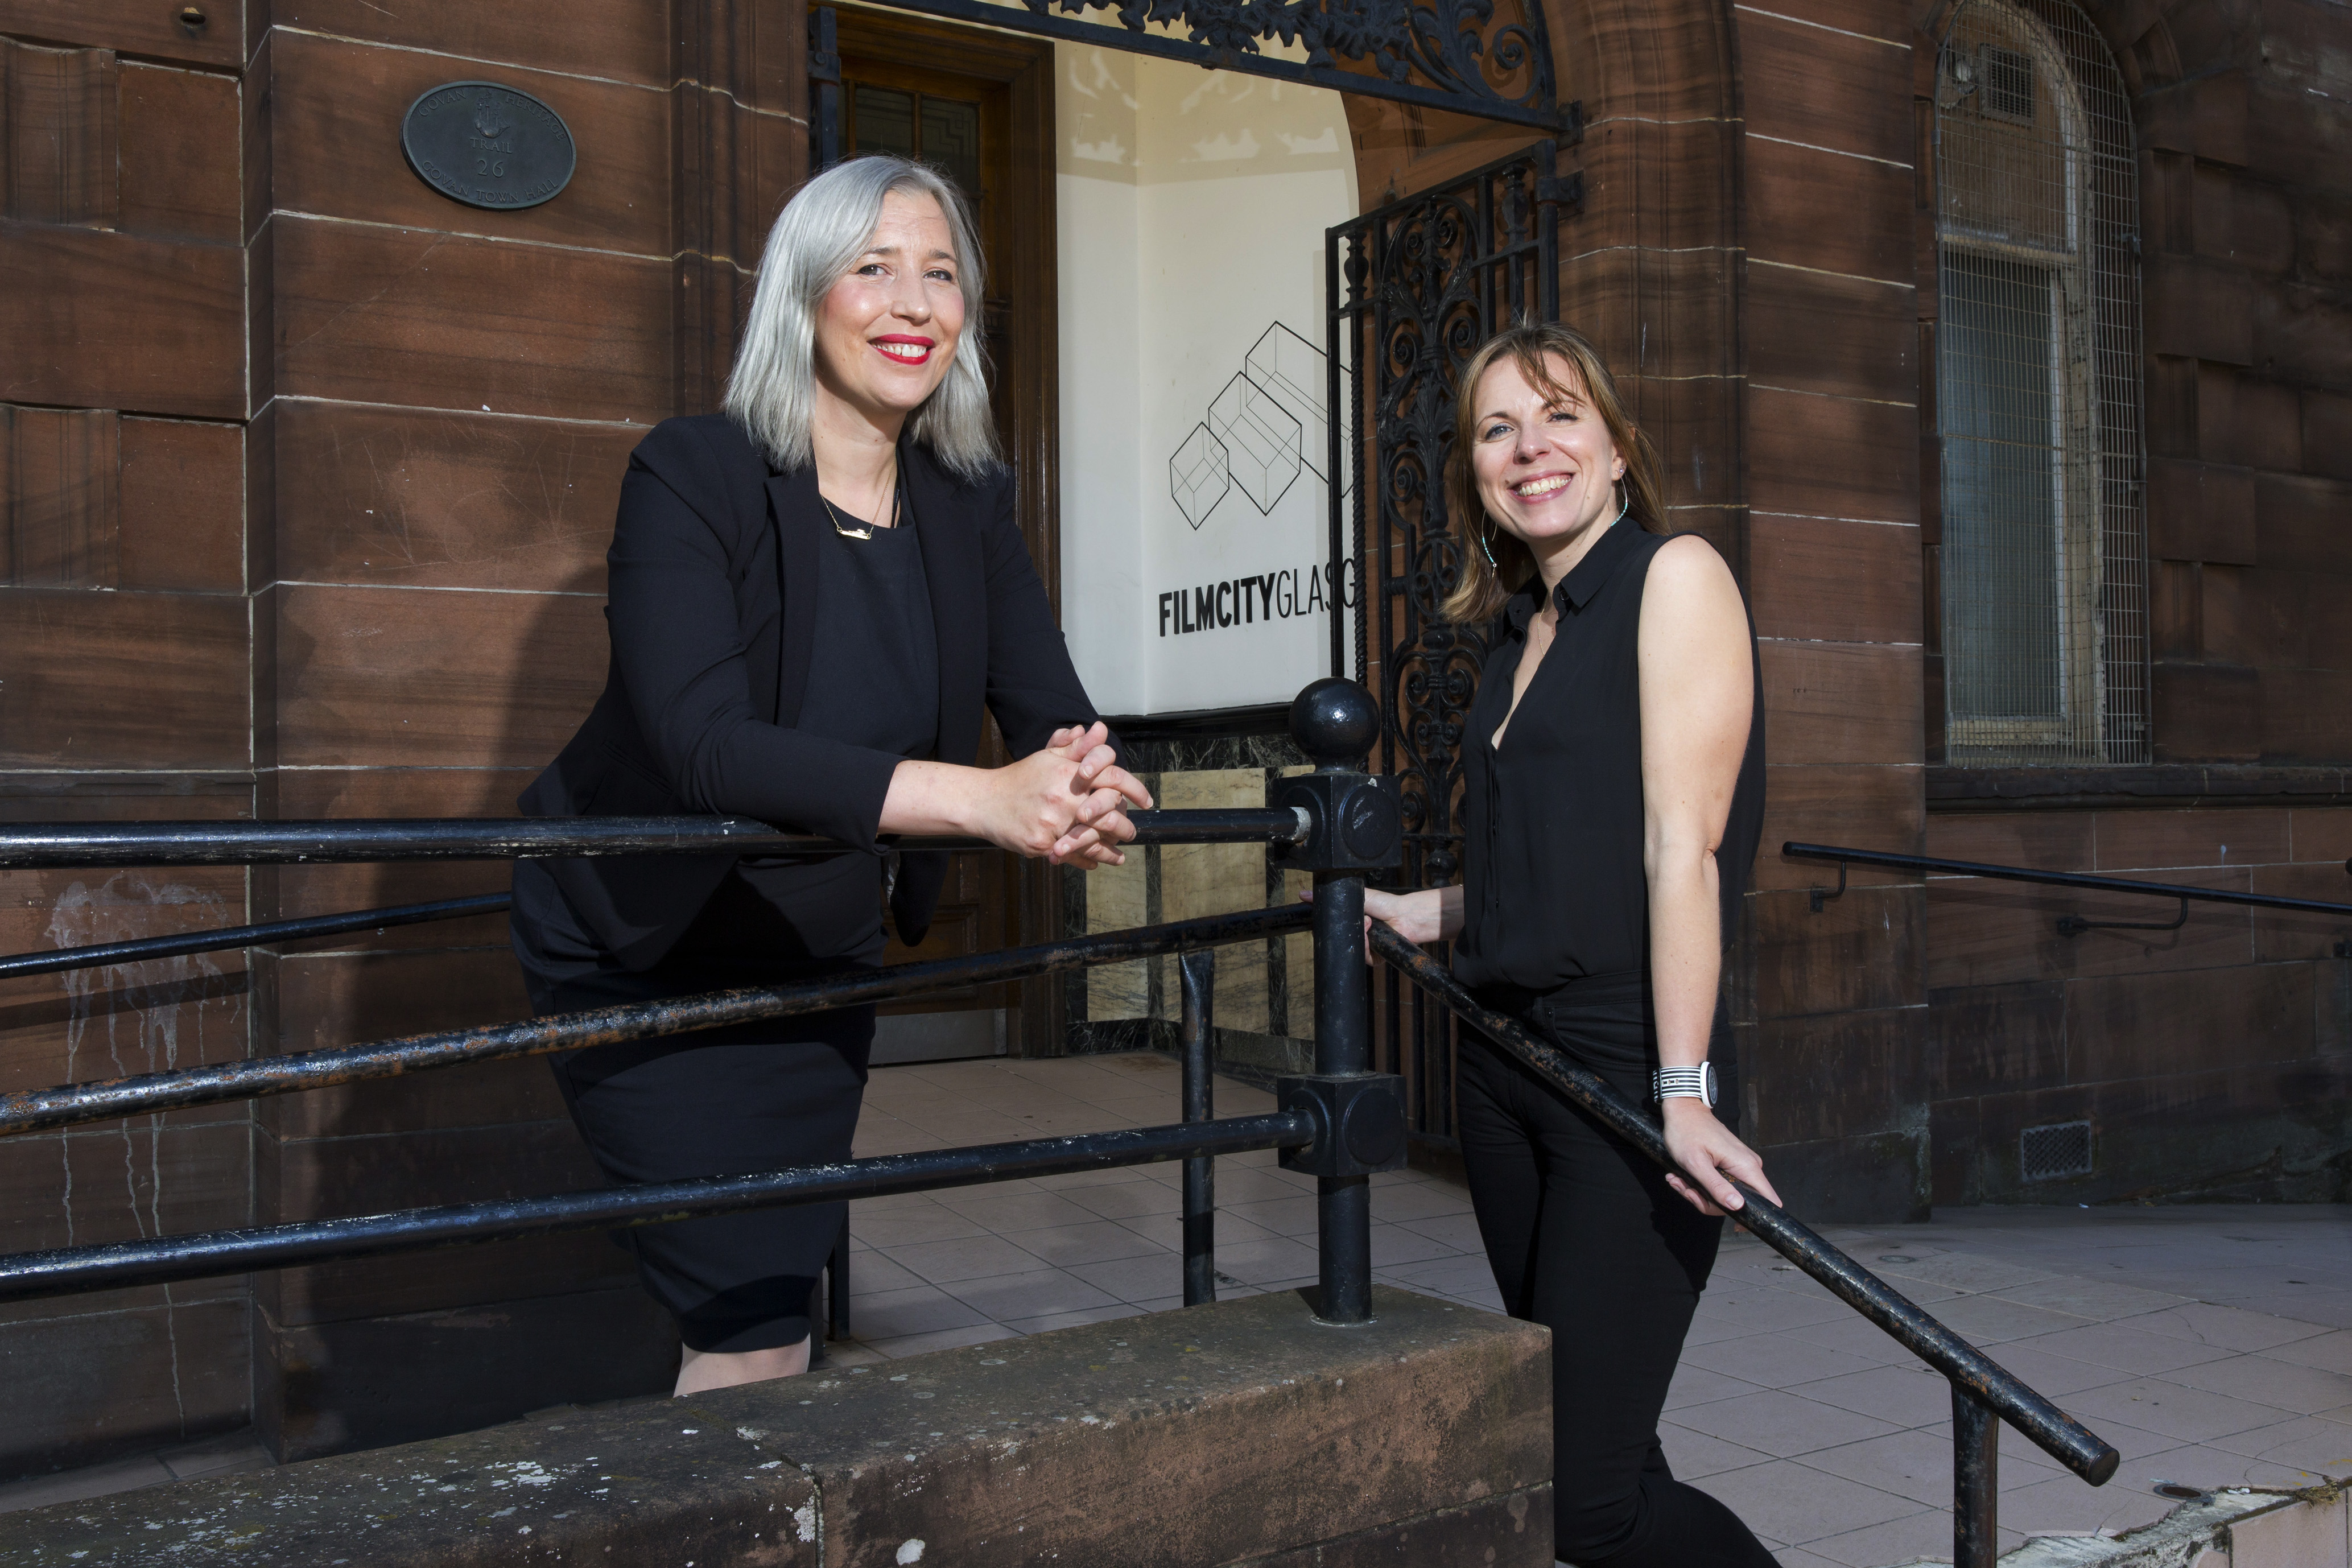 Media release: Business development initiative launched for Scotland's screen sector